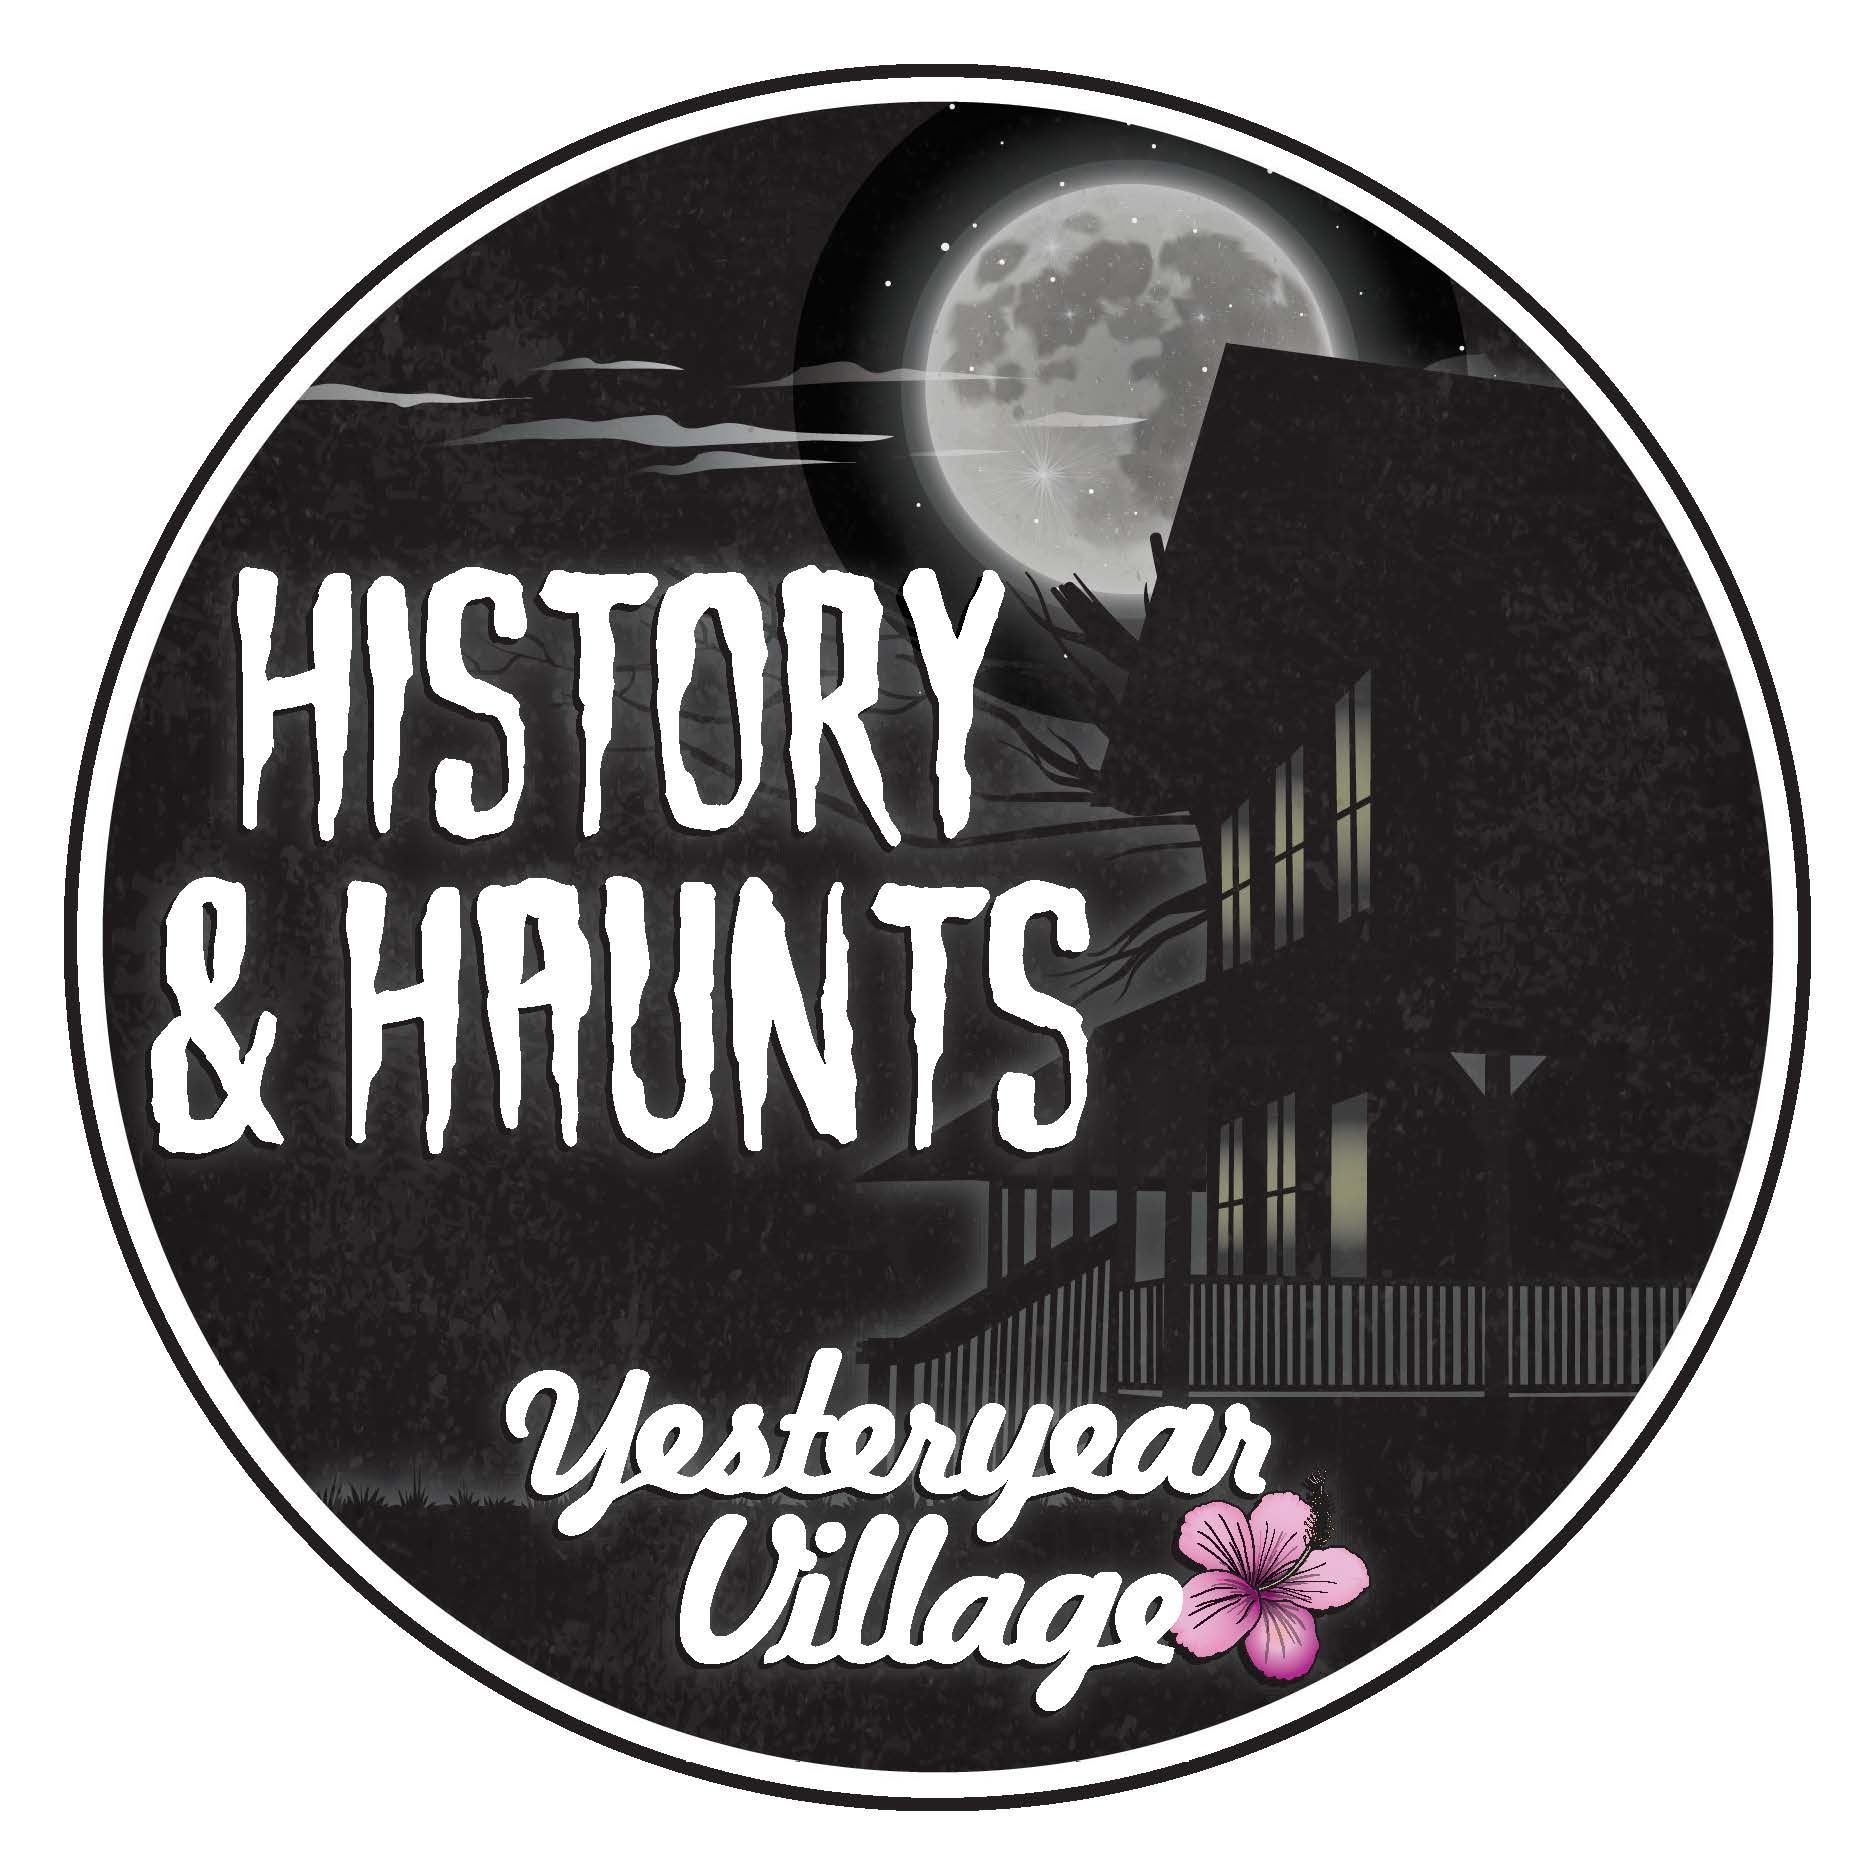 Upcoming Events In Yesteryear Village With Regard To South Florida Fairgrounds Events Calendar